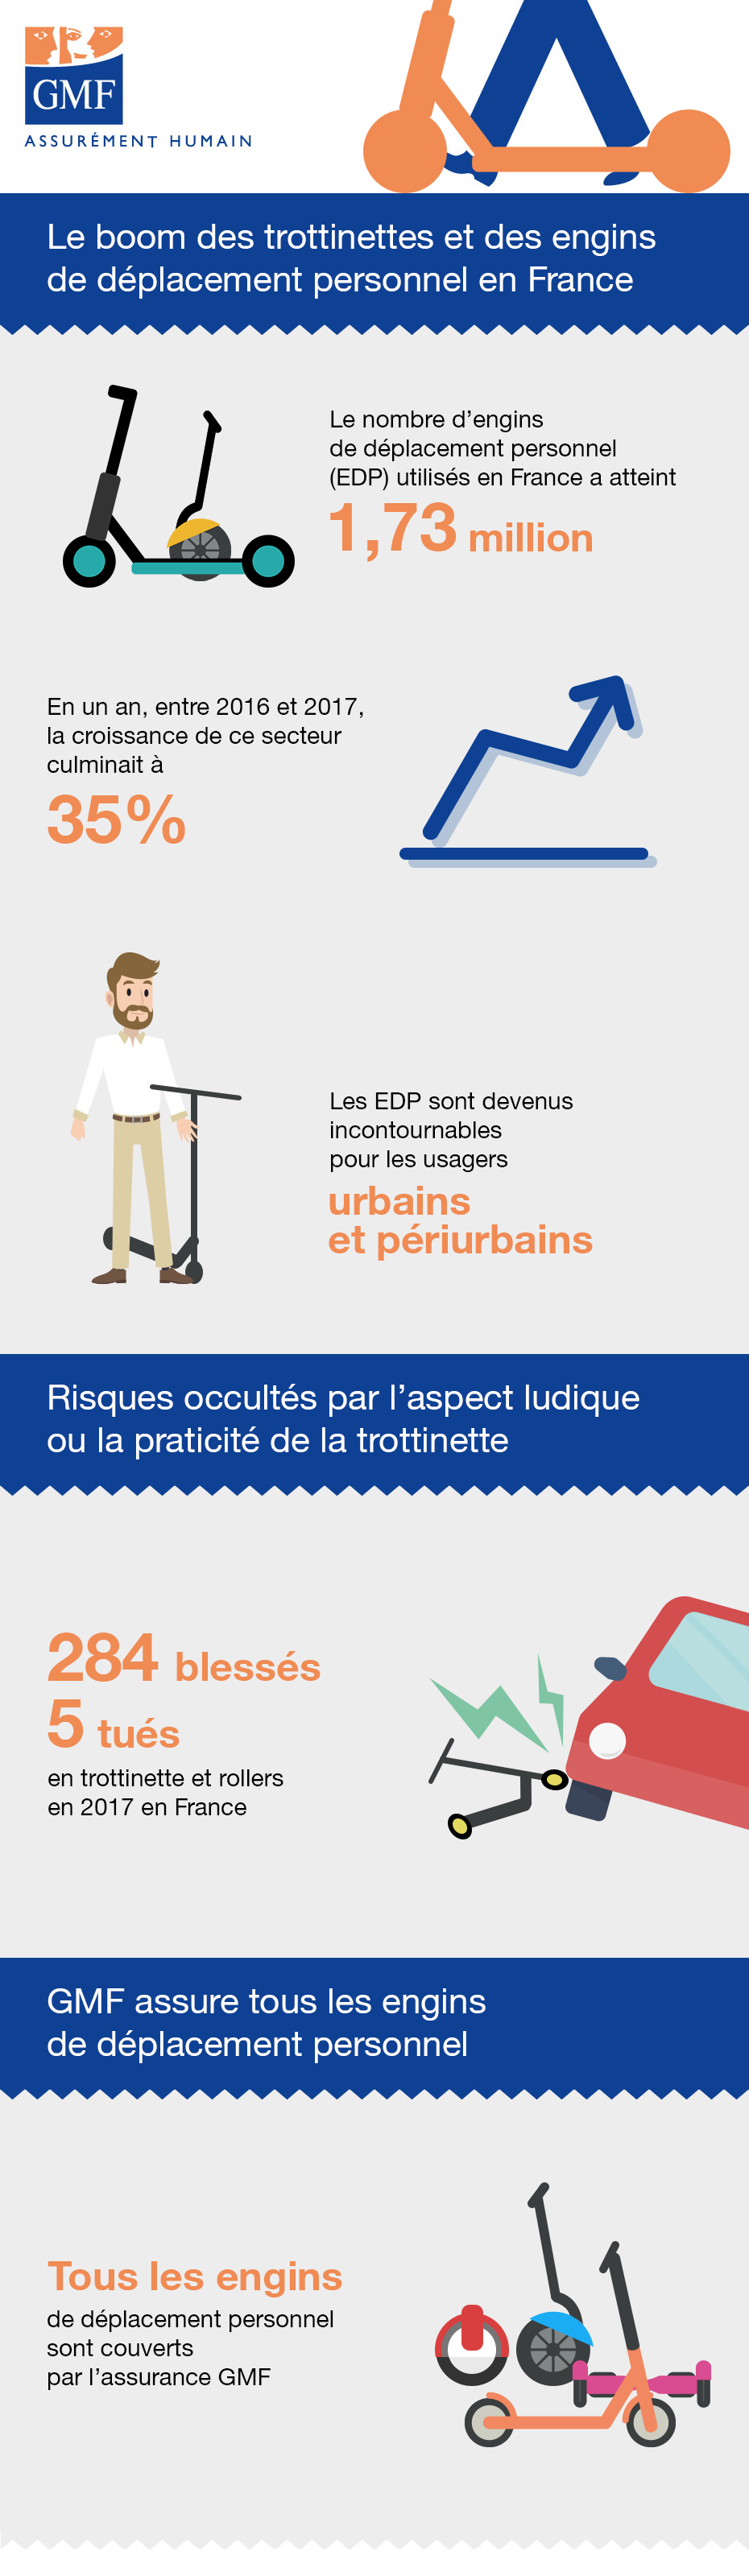 gmf-trottinette-infographie-03.png